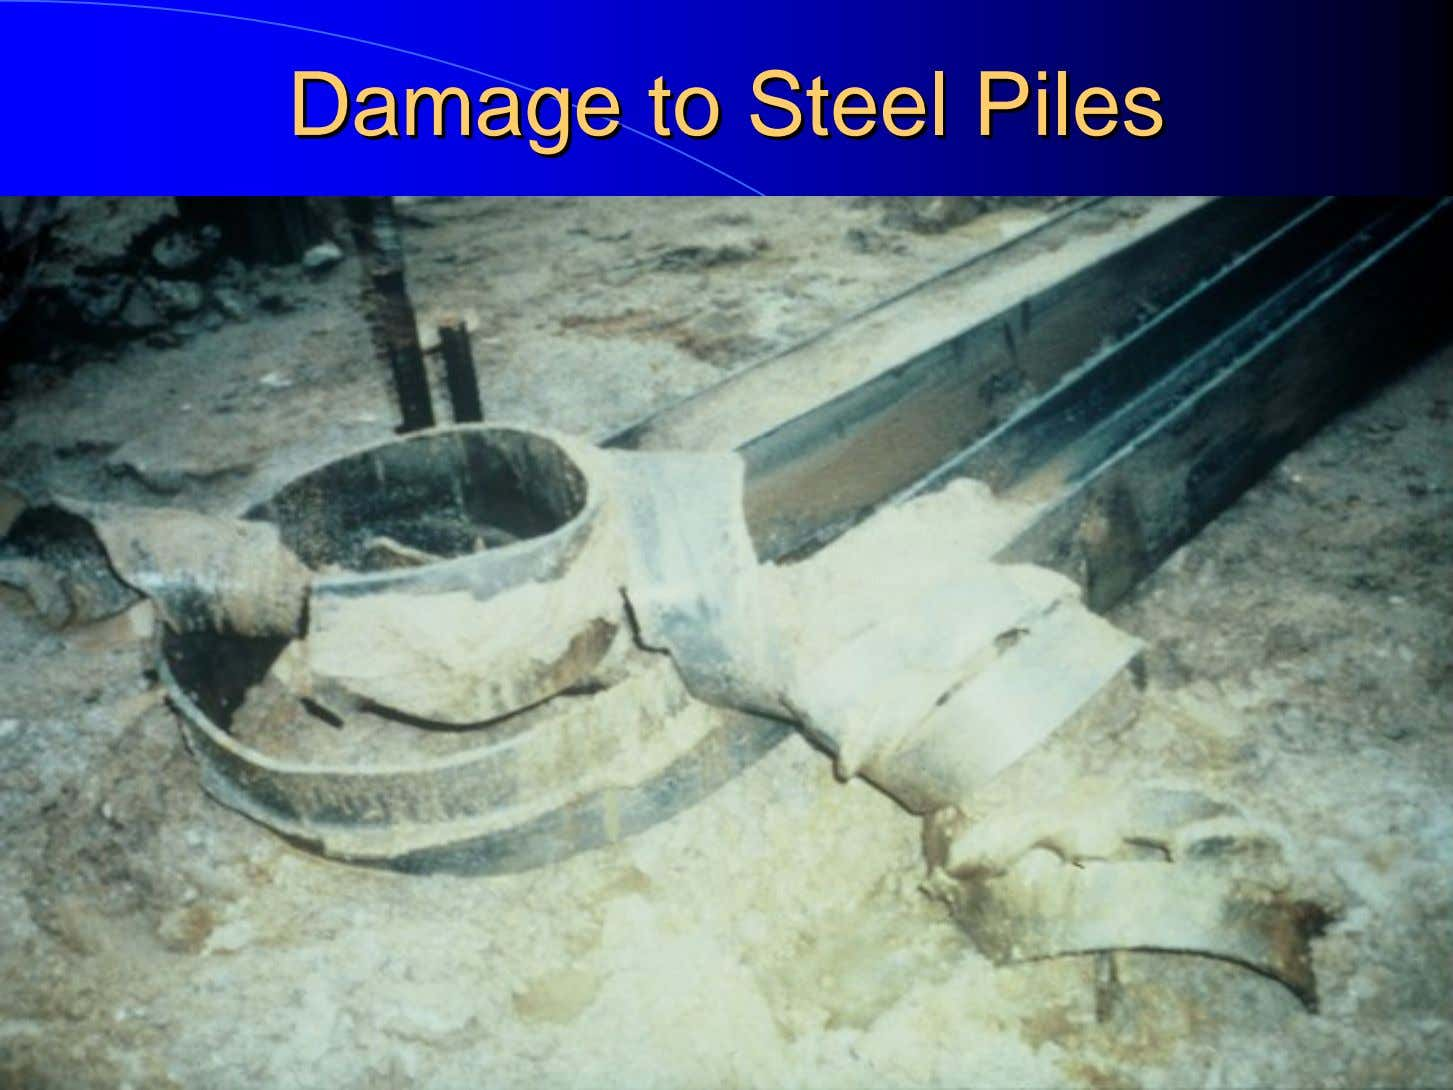 DamageDamage toto SteelSteel PilesPiles